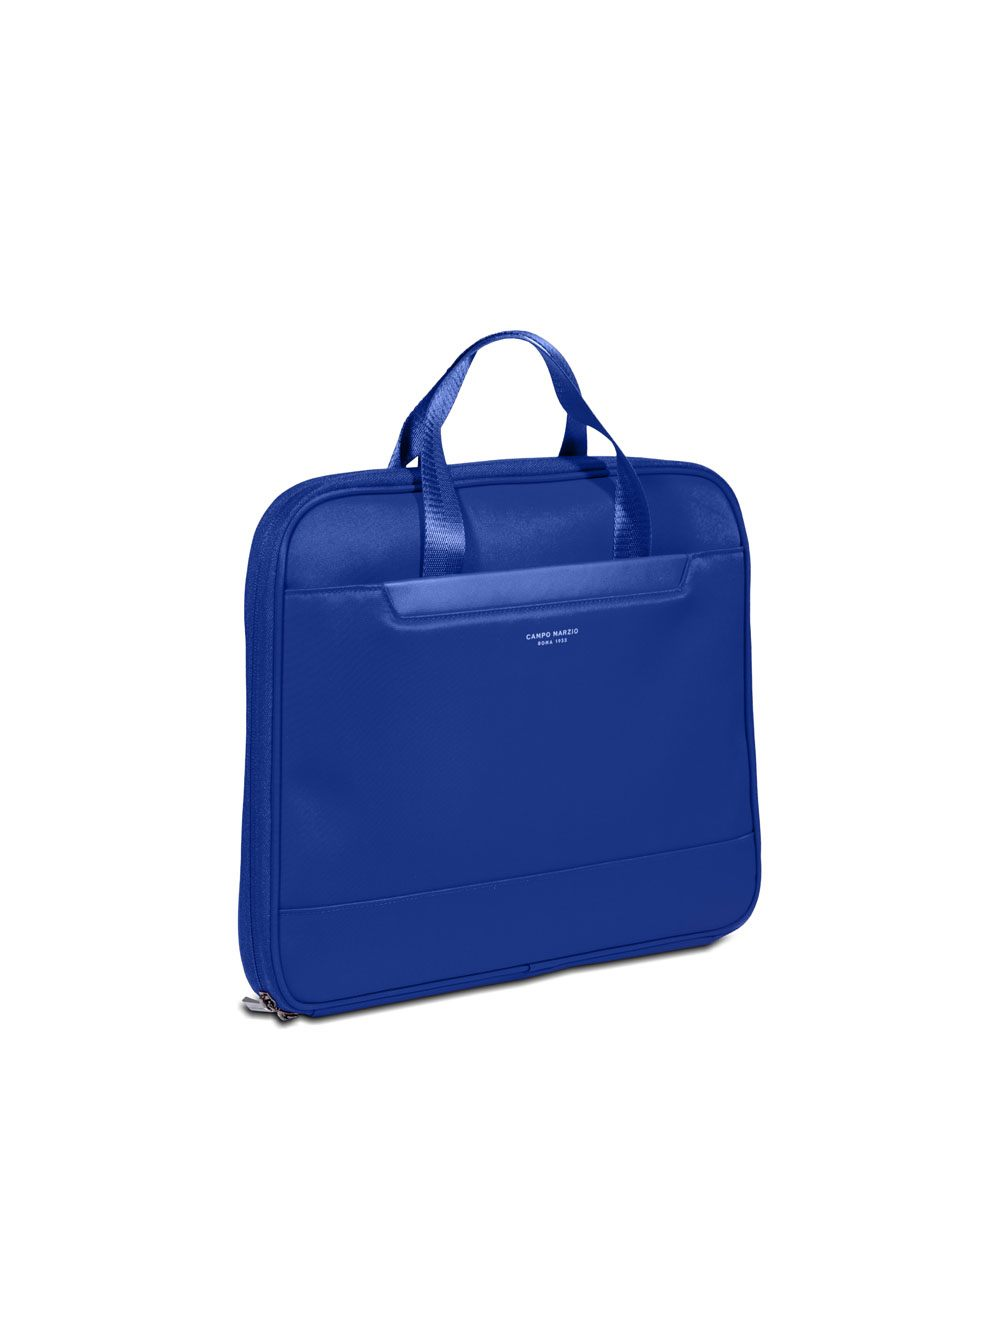 "Custodia Per Laptop 15"" Slim - Blu Mirtillo"